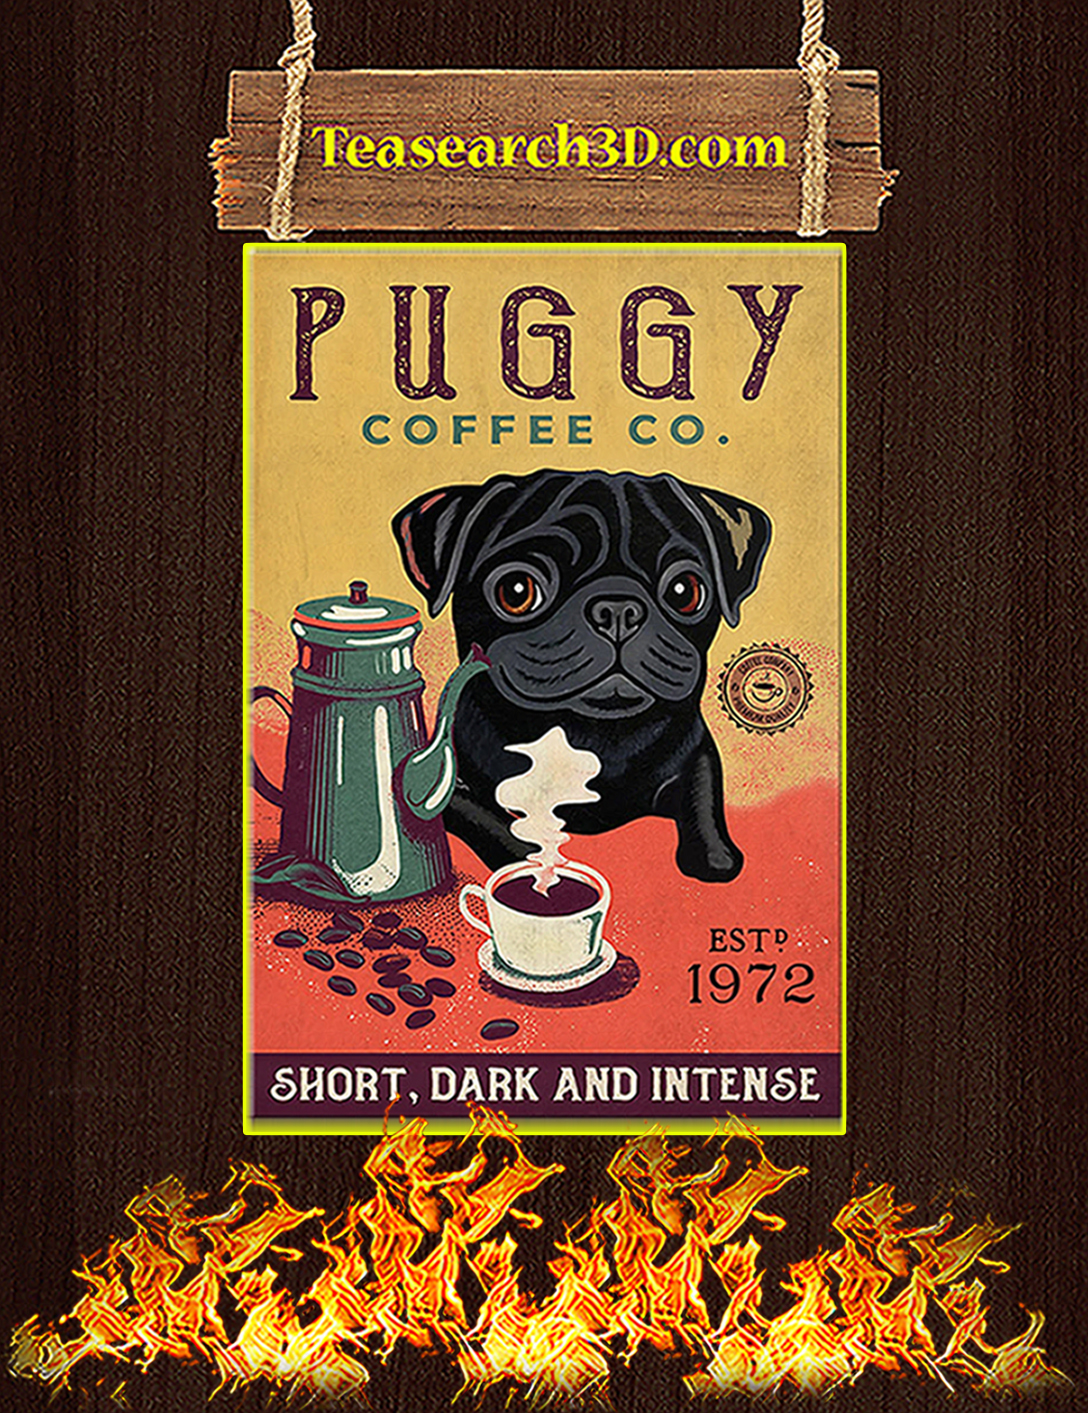 Puggy coffee co short dark and intense poster A2